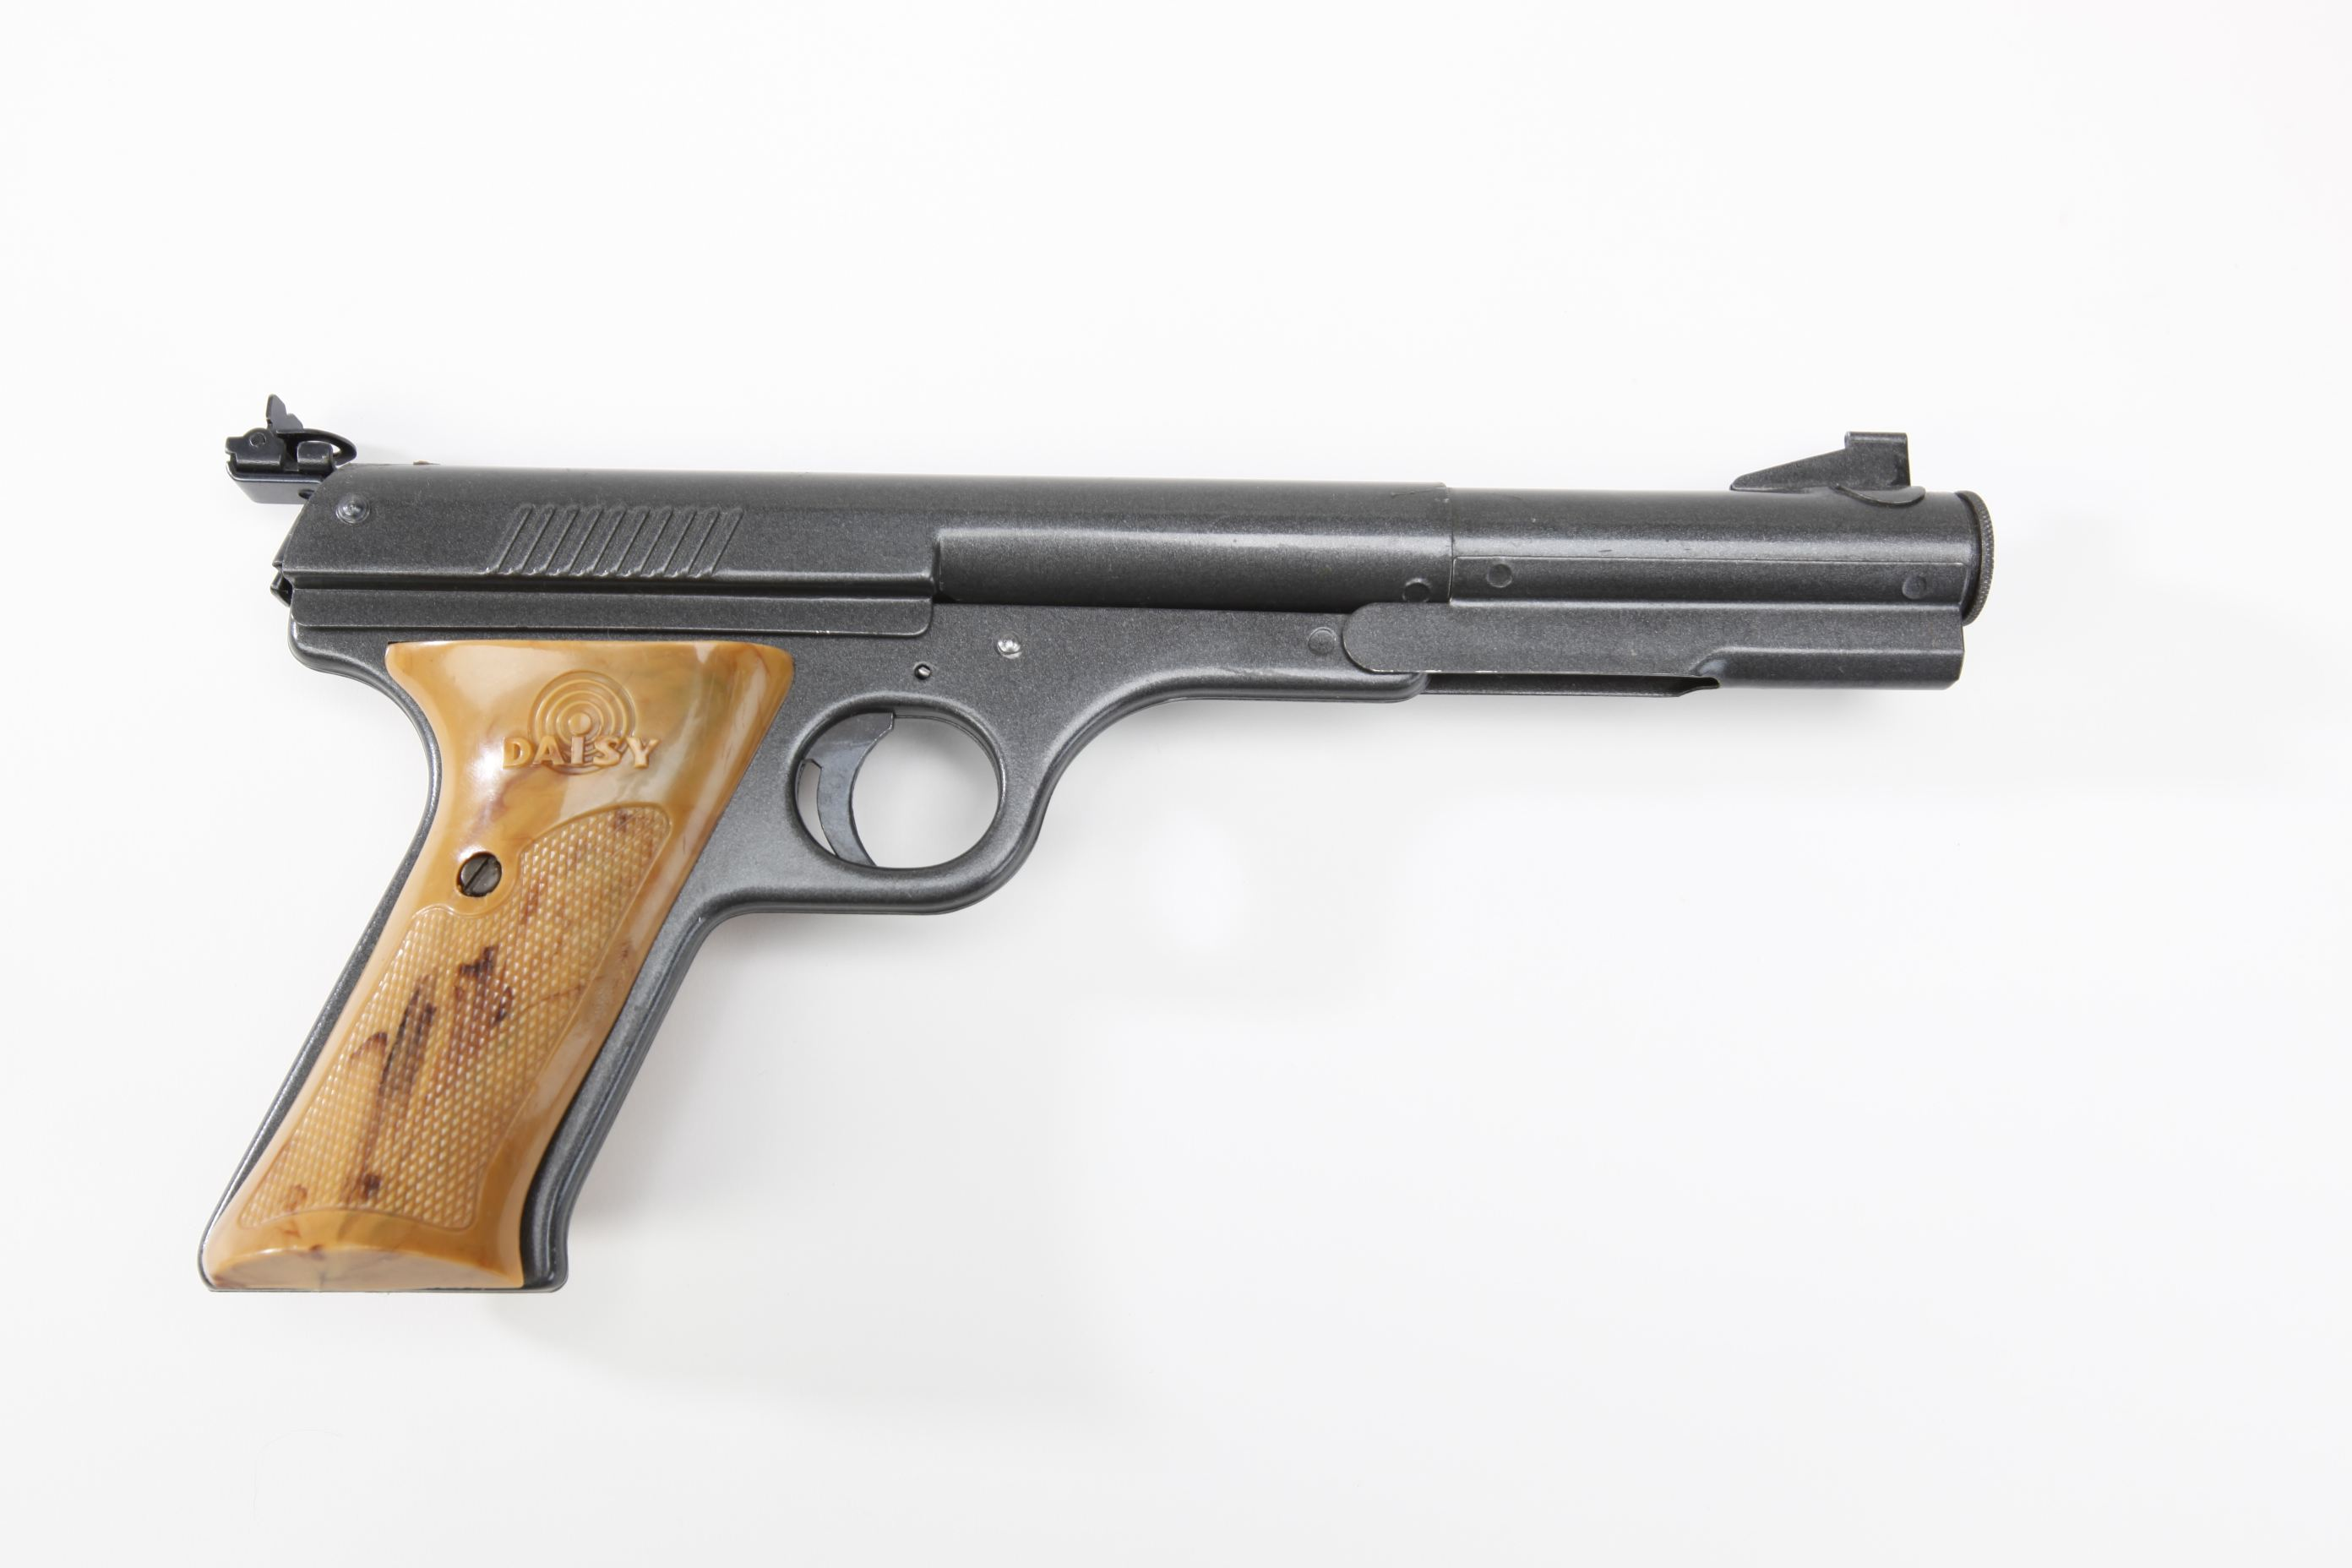 Daisy Model 177 Repeating Air Pistol